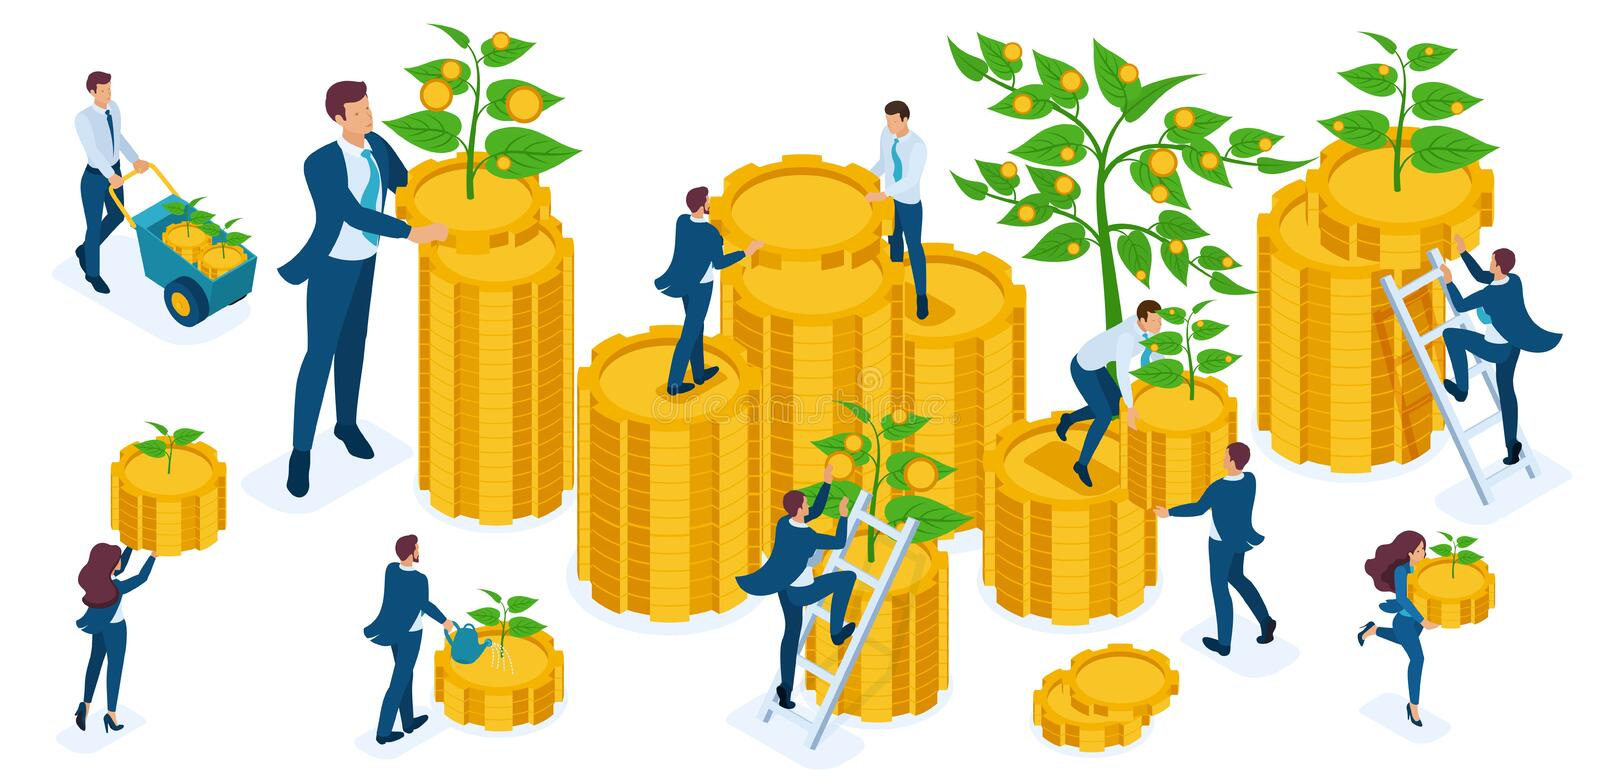 Isometric set of businessmen, investors, bankers, revenue growth, coins, cash, capital investment stock illustration